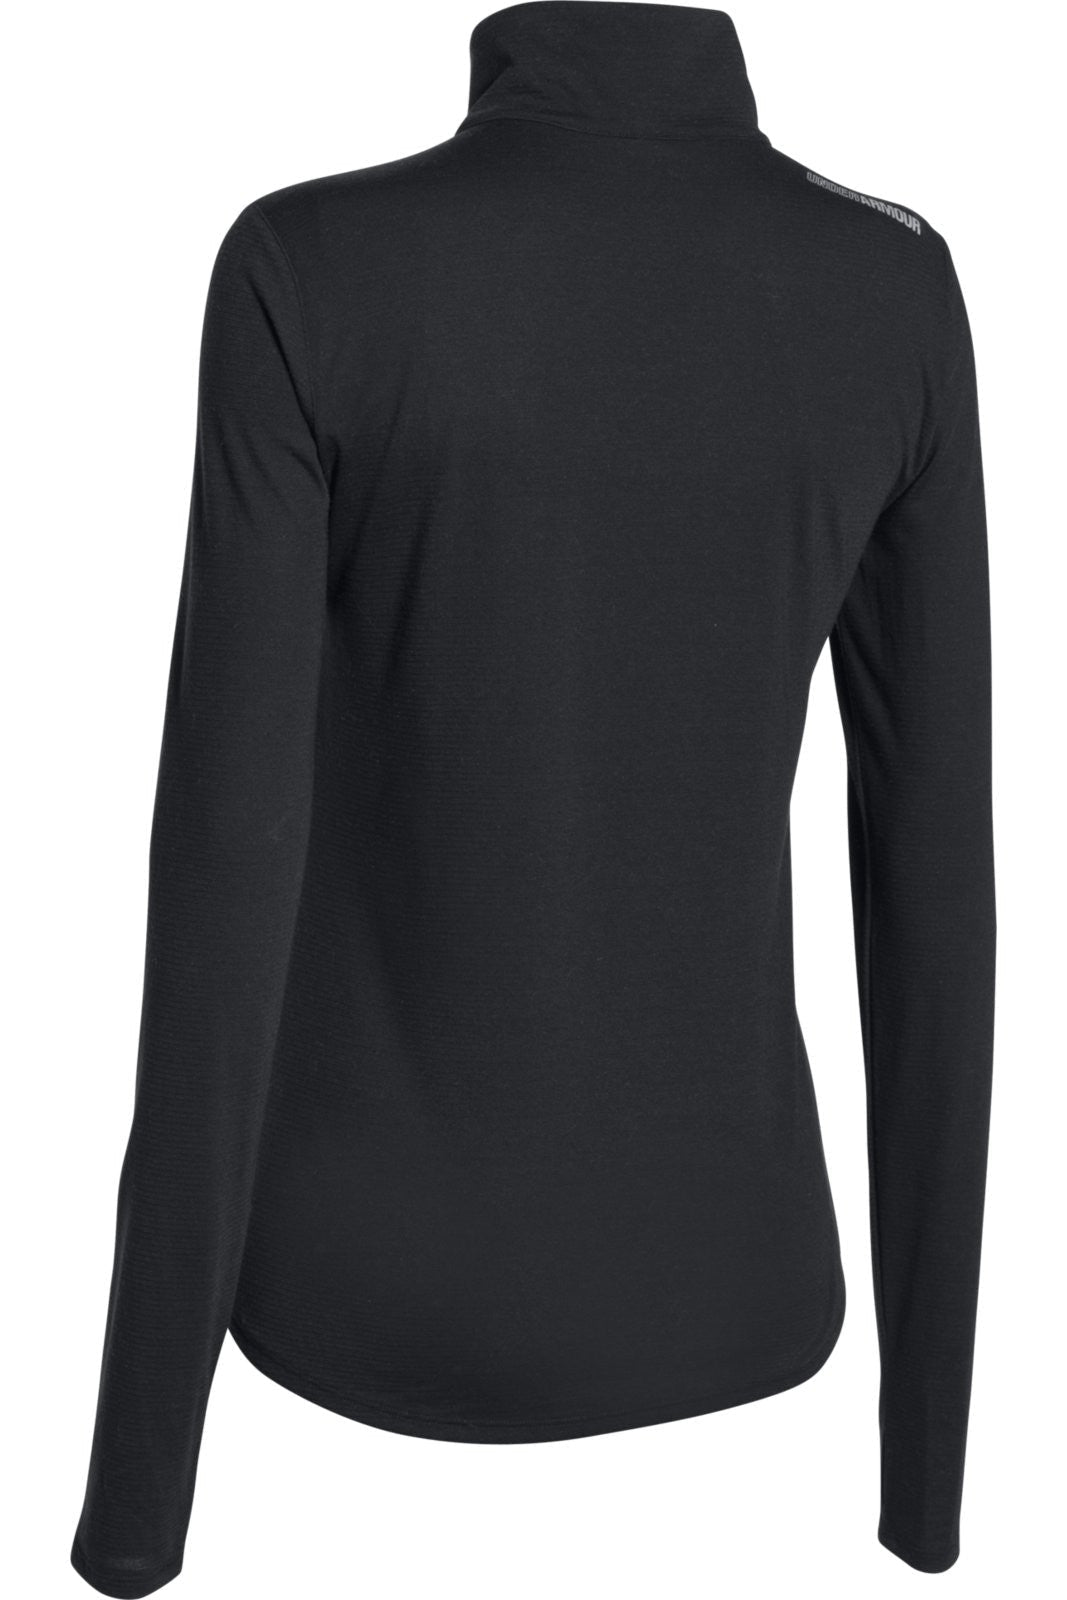 Under Armour Streaker 1/2 Zip - Black image 4